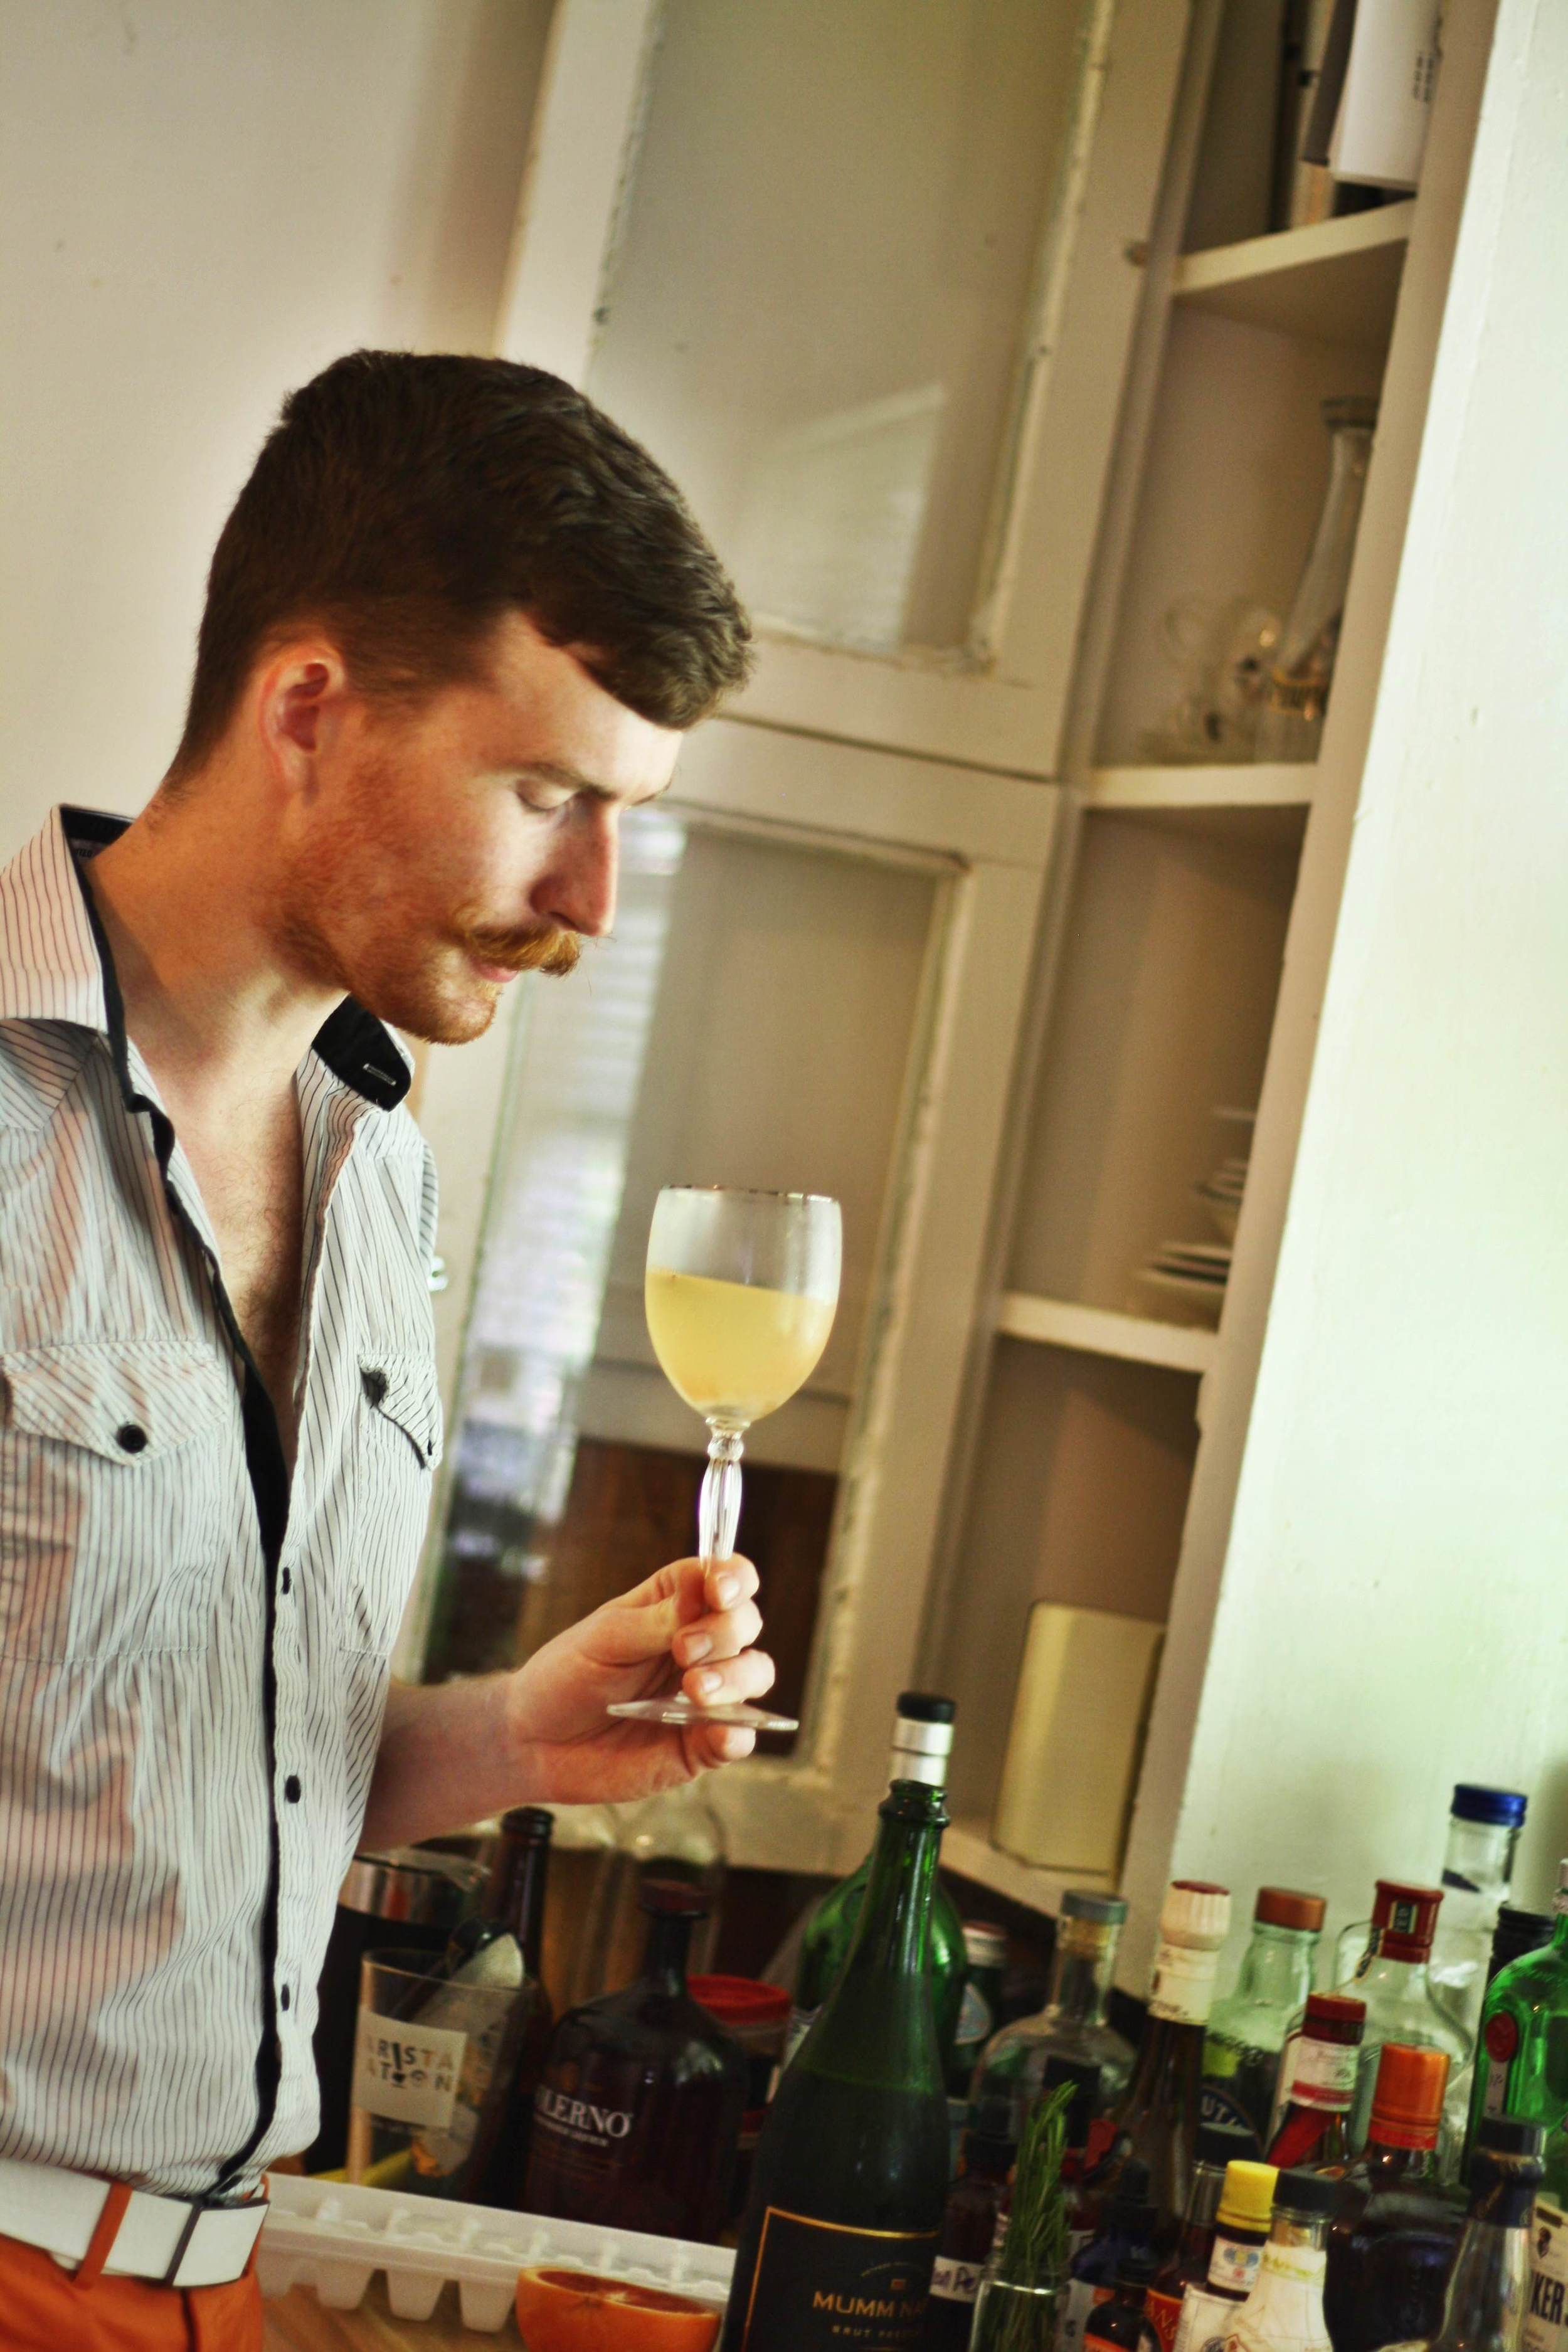 We did a little recipe testing and photo shooting with Thomas Paessler for a new cocktail recipe.